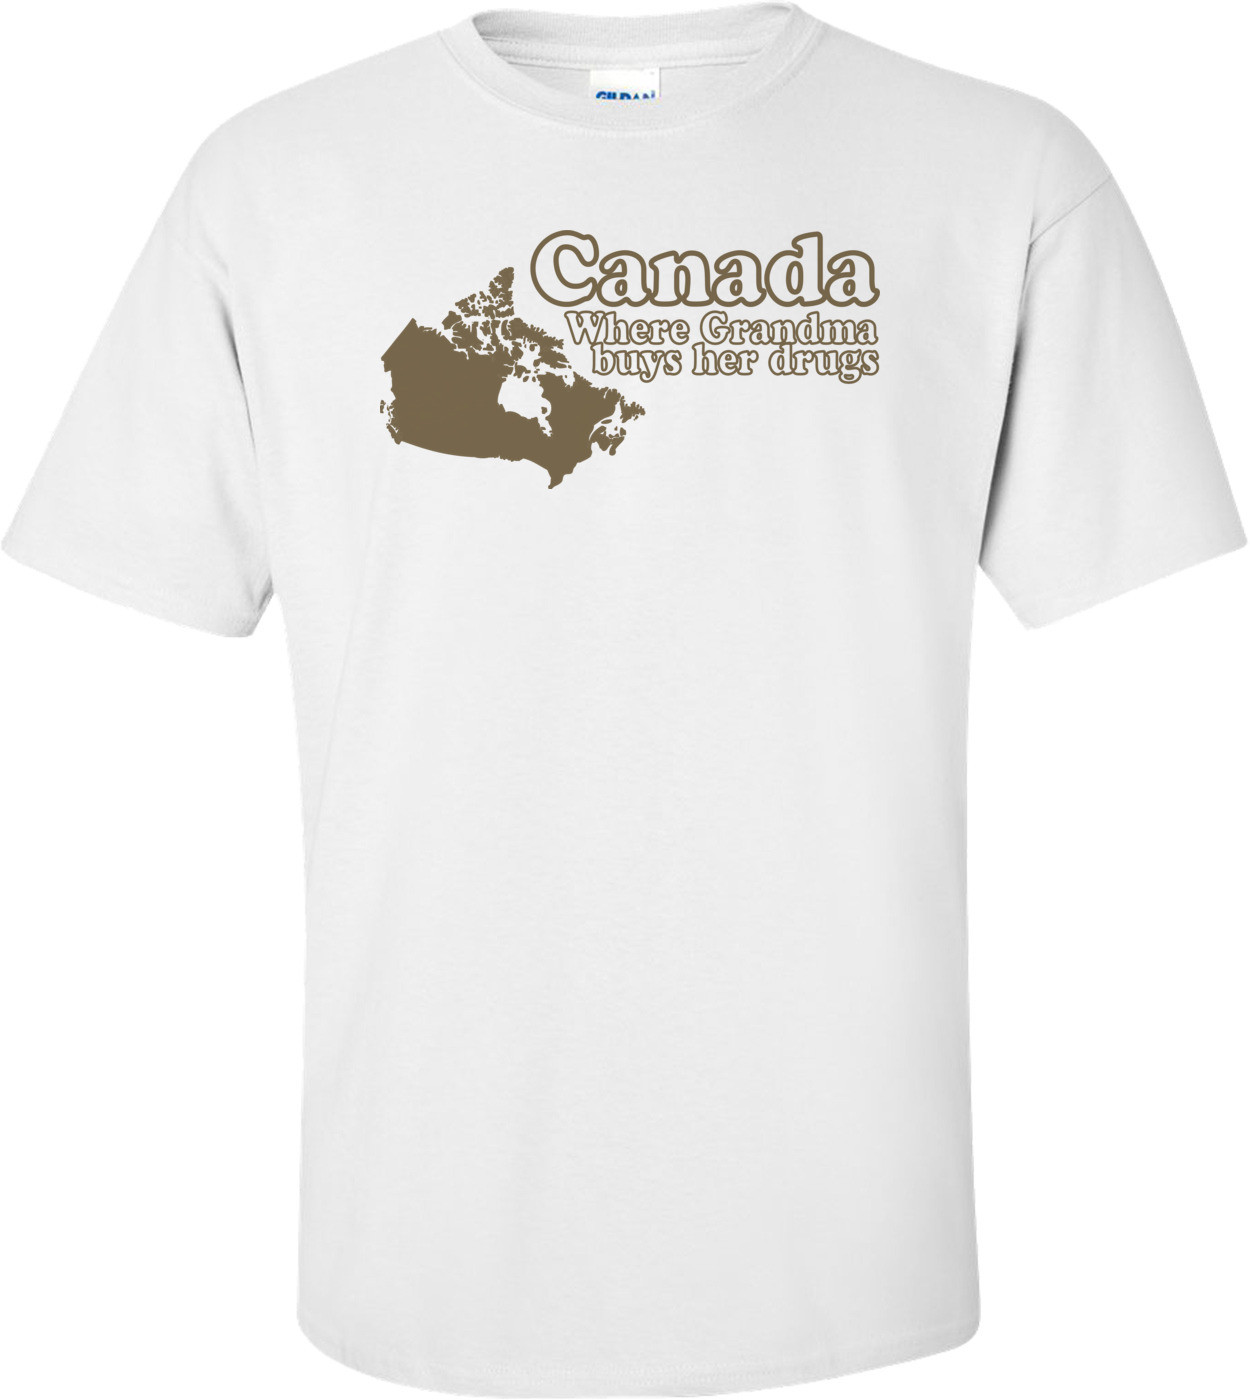 Canada Where Grandma Buys Her Drugs T-shirt